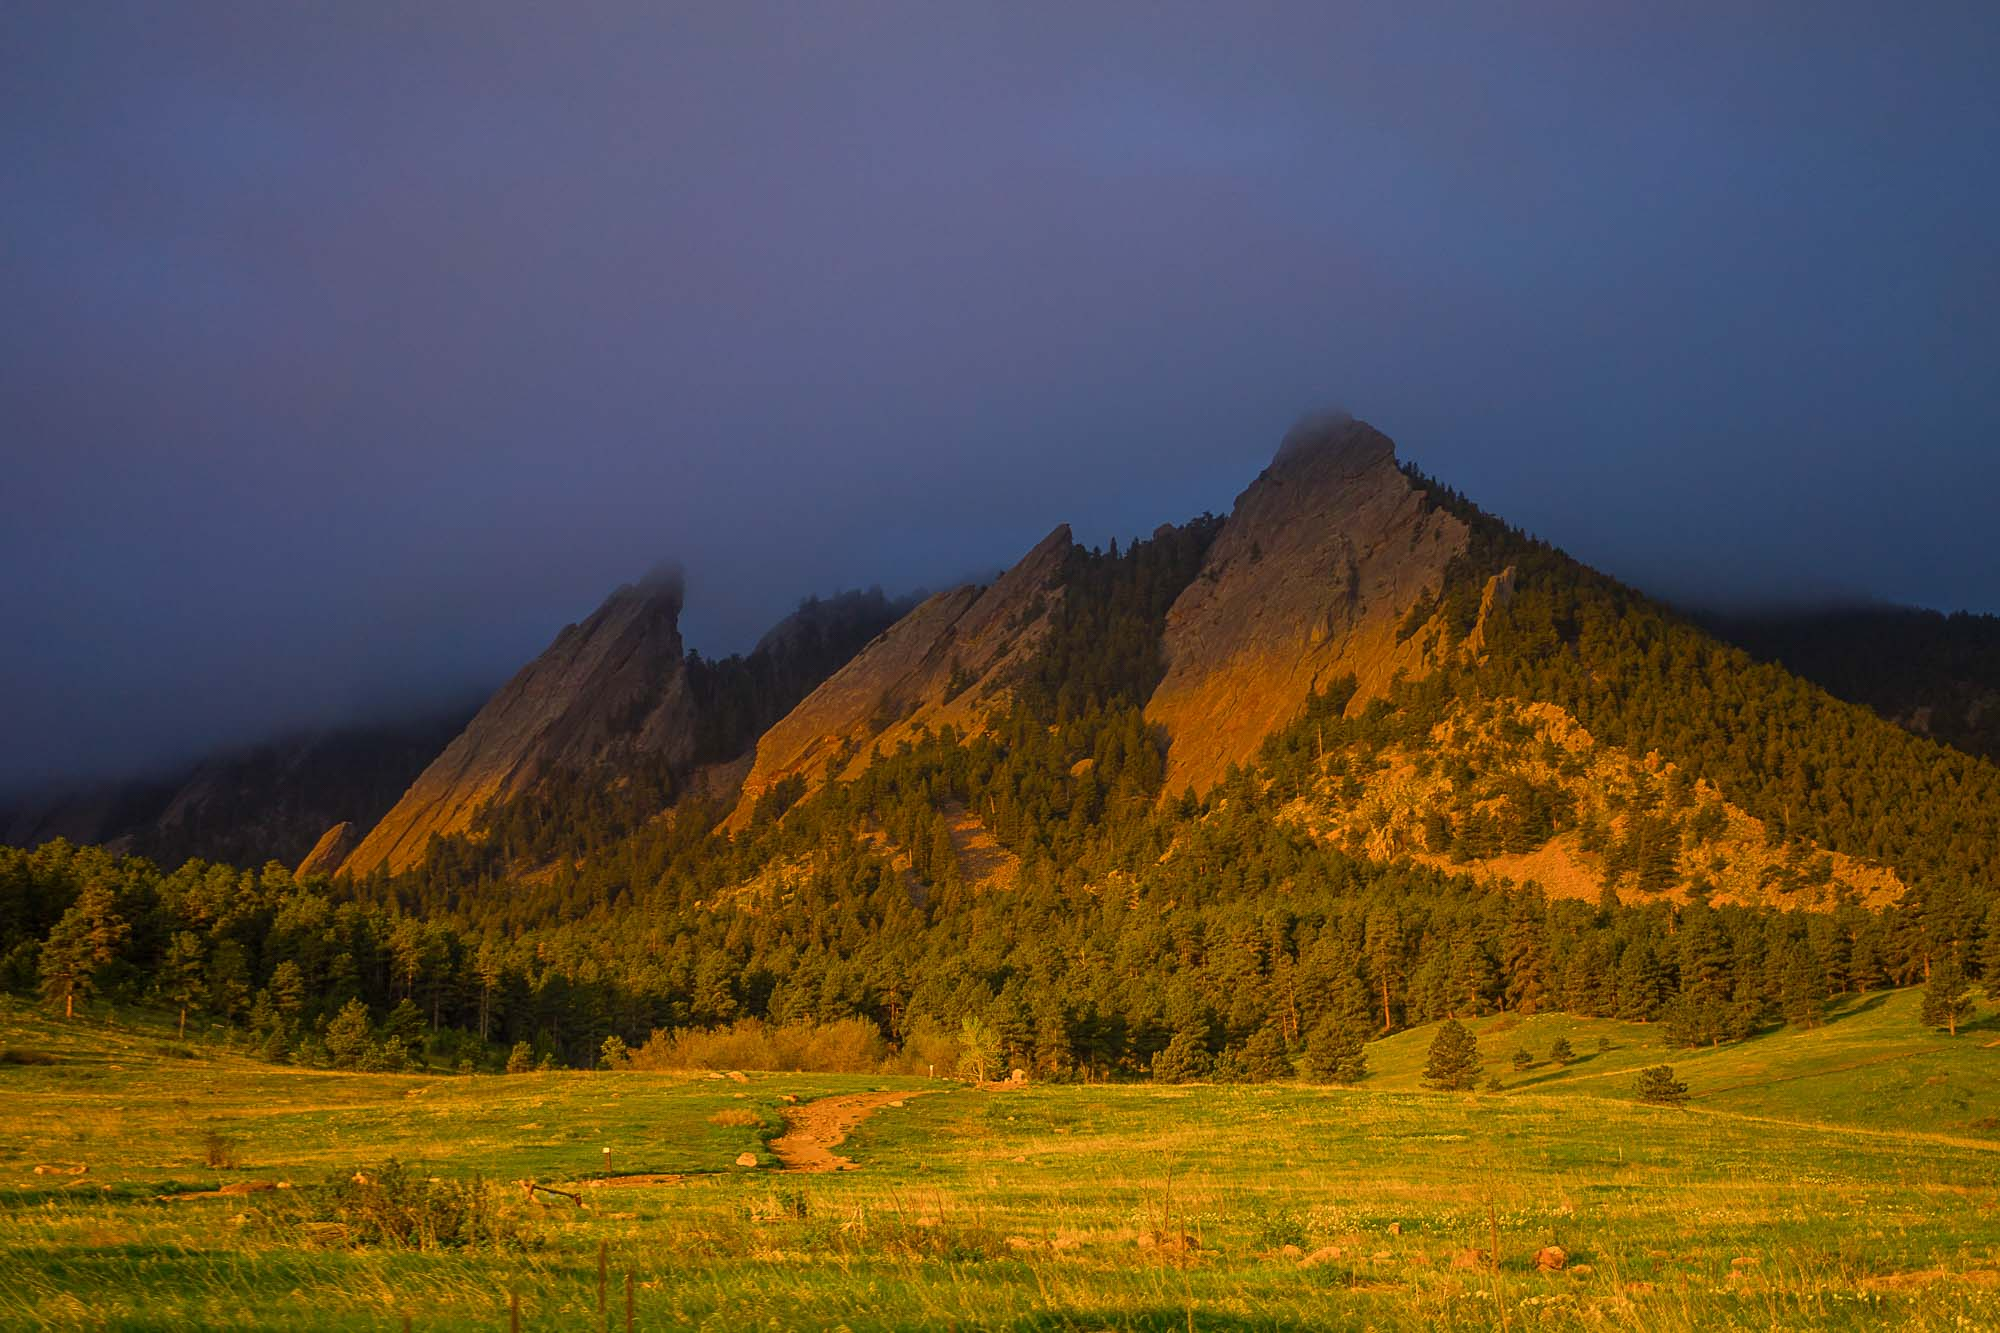 The Flatirons of Chautauqua in Boulder, Colorado as the sunsets.